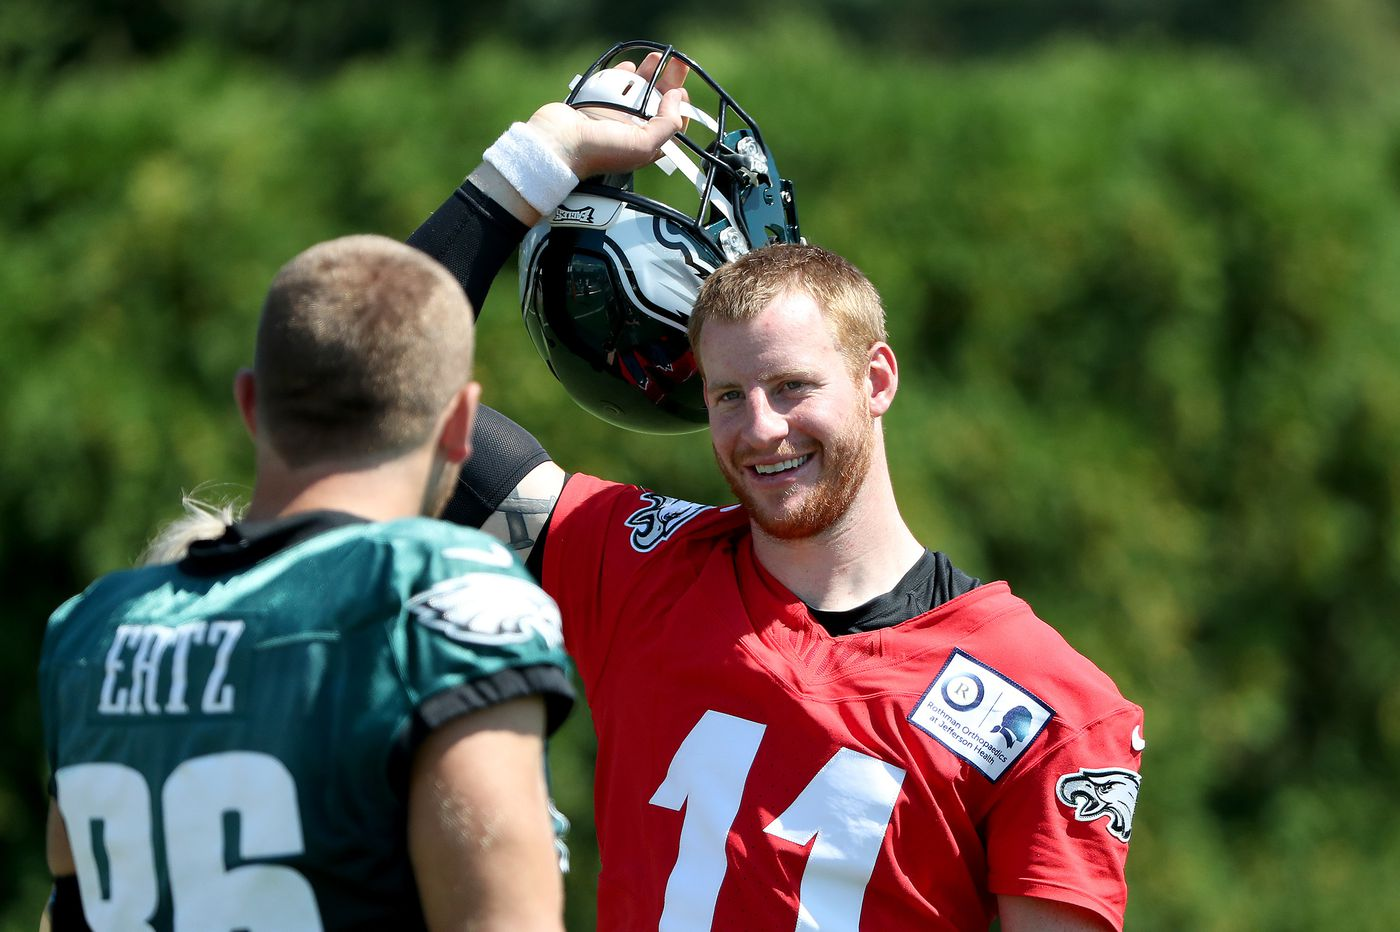 Eagles' Carson Wentz says he'll be ready for season opener whether he plays in preseason or not